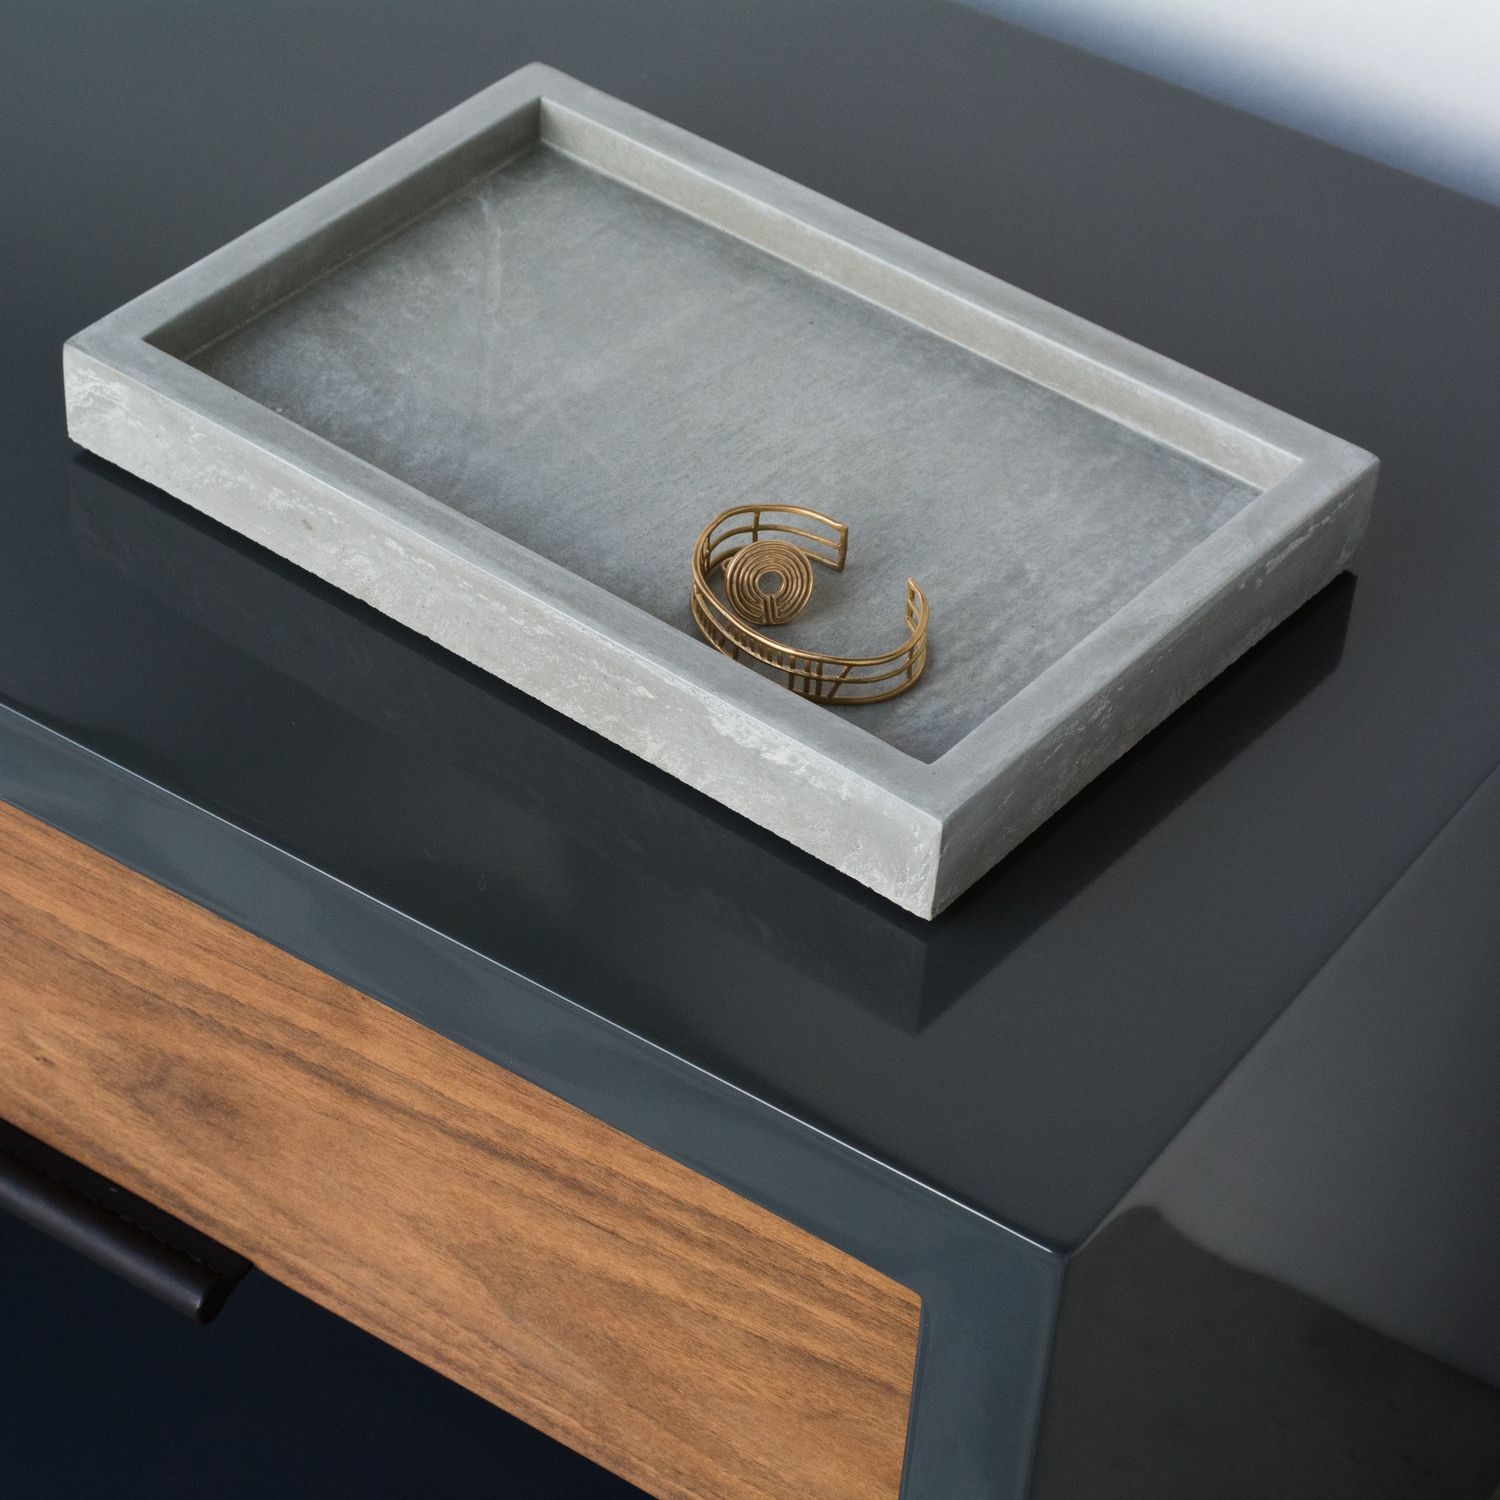 Rest your personal accessories on a backdrop of concrete. This valet tray expresses a bold minimal style sure to compliment and table or desk.   #WorkOf #WorkOfDoesHoliday #HolidaySeason #TisTheSeason #WhereDesignLives